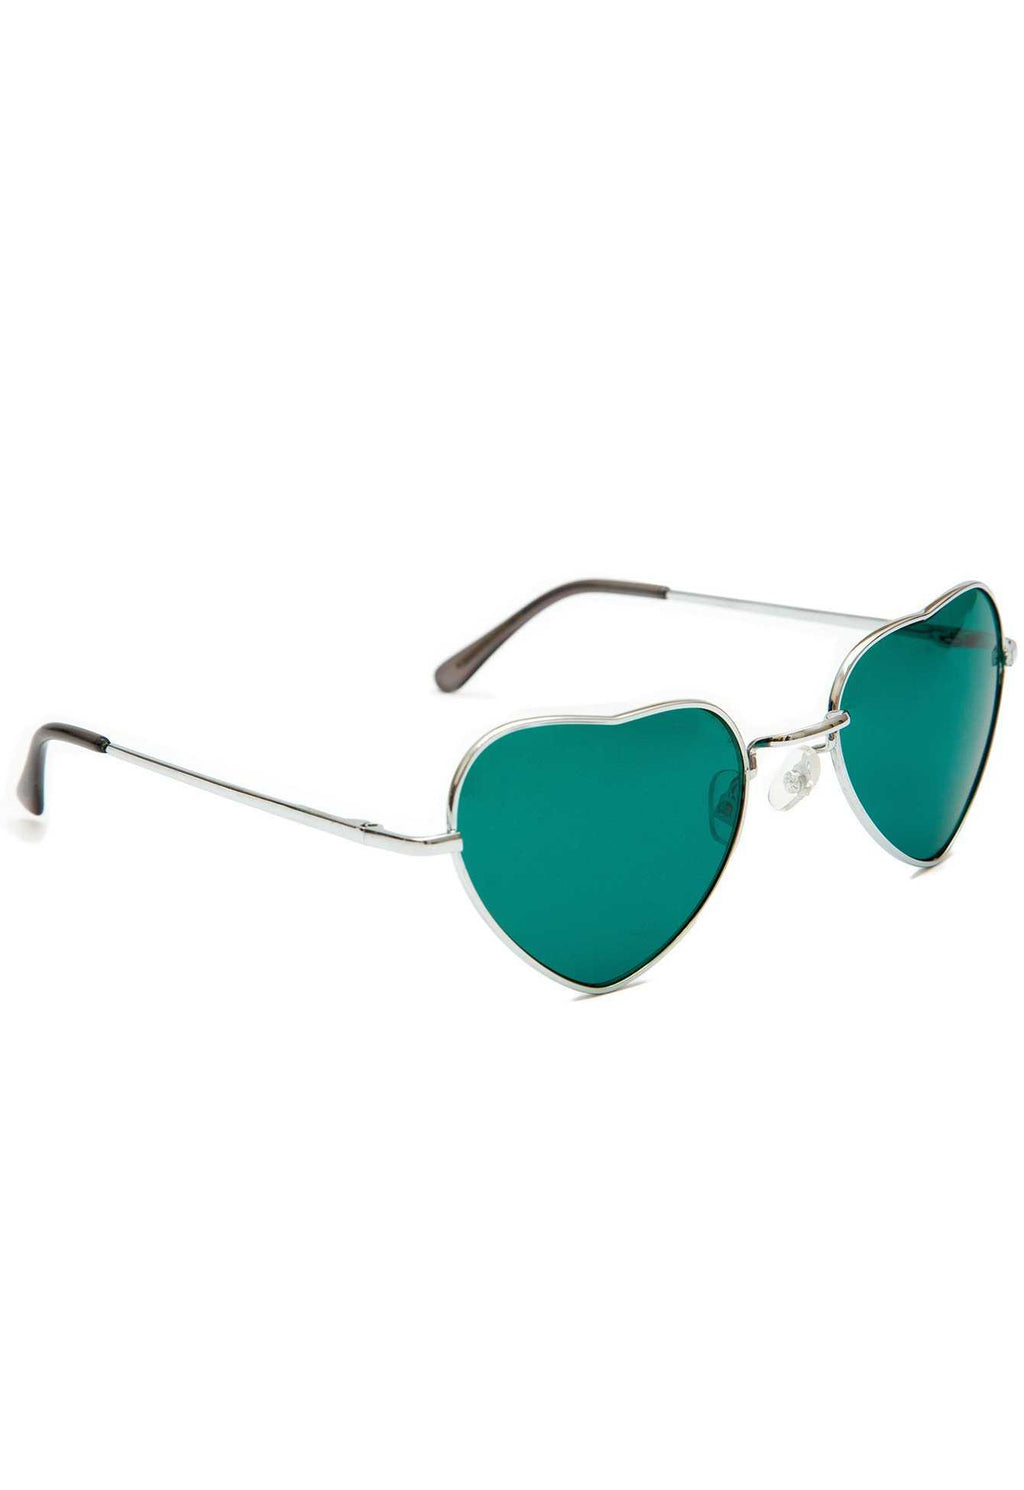 Accessories - Lennon Love Sunglasses - Green